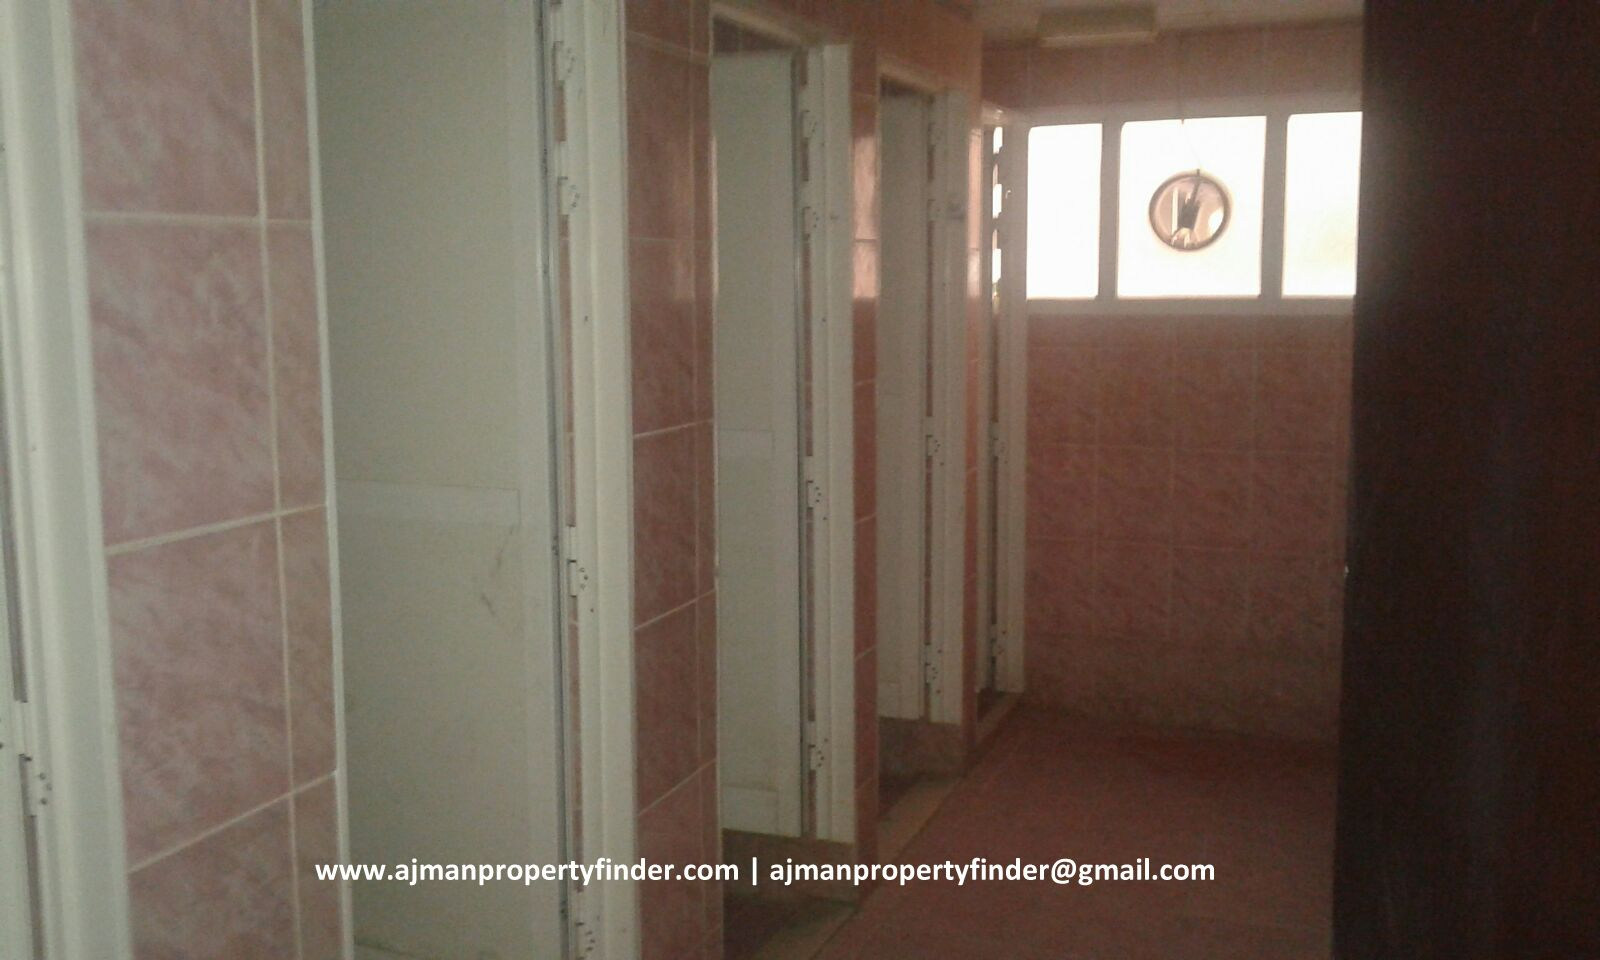 Labour Camp for rent in ajman   Labour Accommodation in New Industrial Area